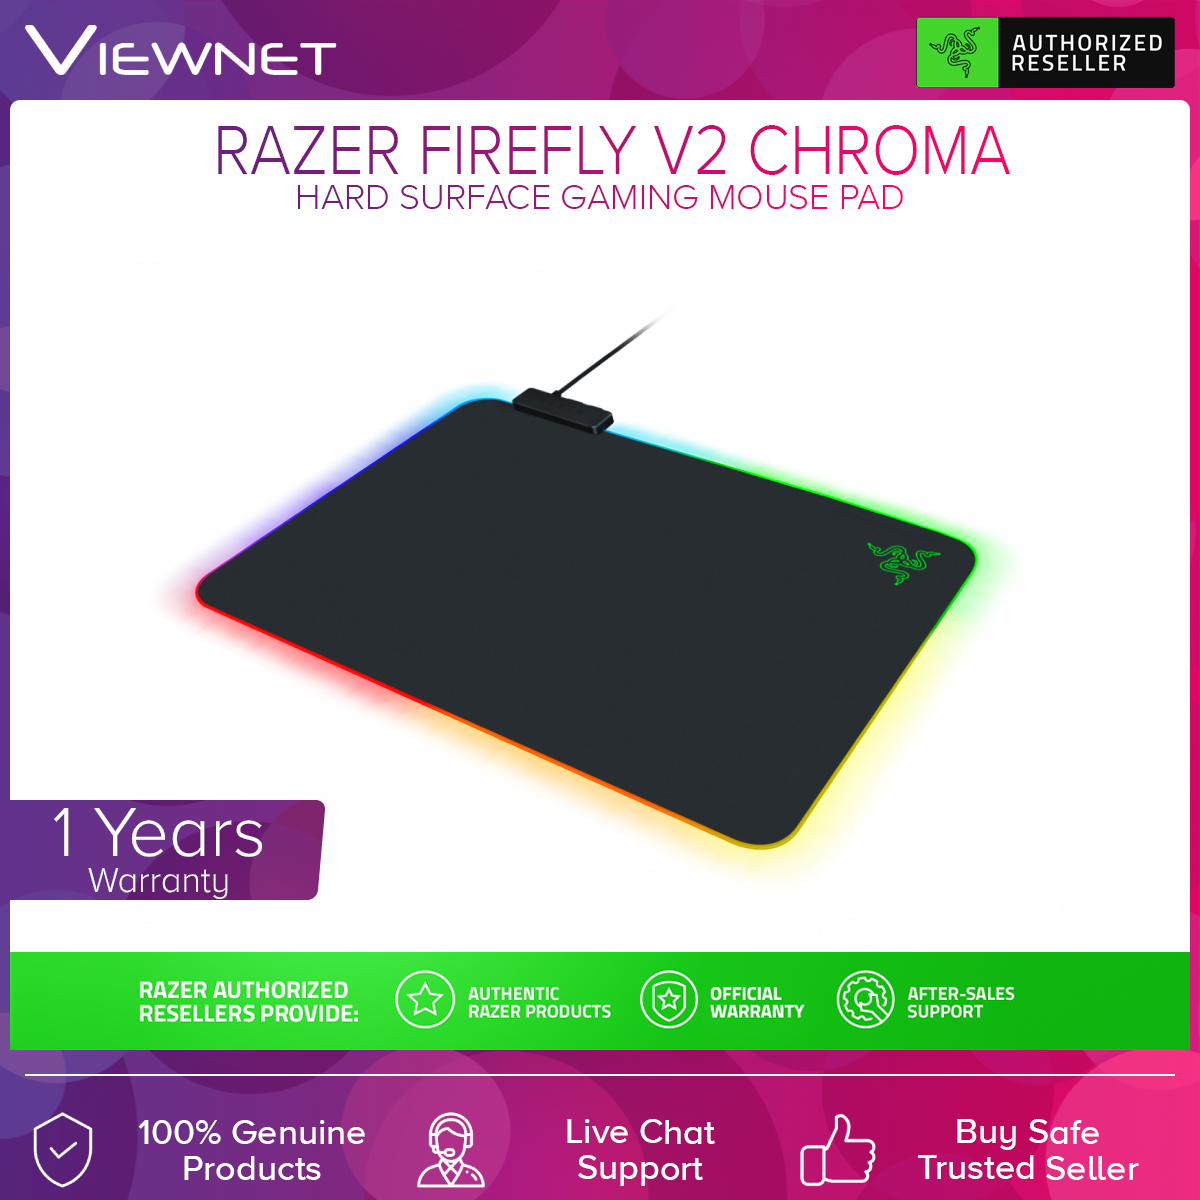 Razer Firefly v2 Chroma Hard Surface Gaming Mouse Pad (RZ02-03020100-R3M1),Razer Chroma RGB, Built-in Cable Catch, Ultra thin, Anti Slip